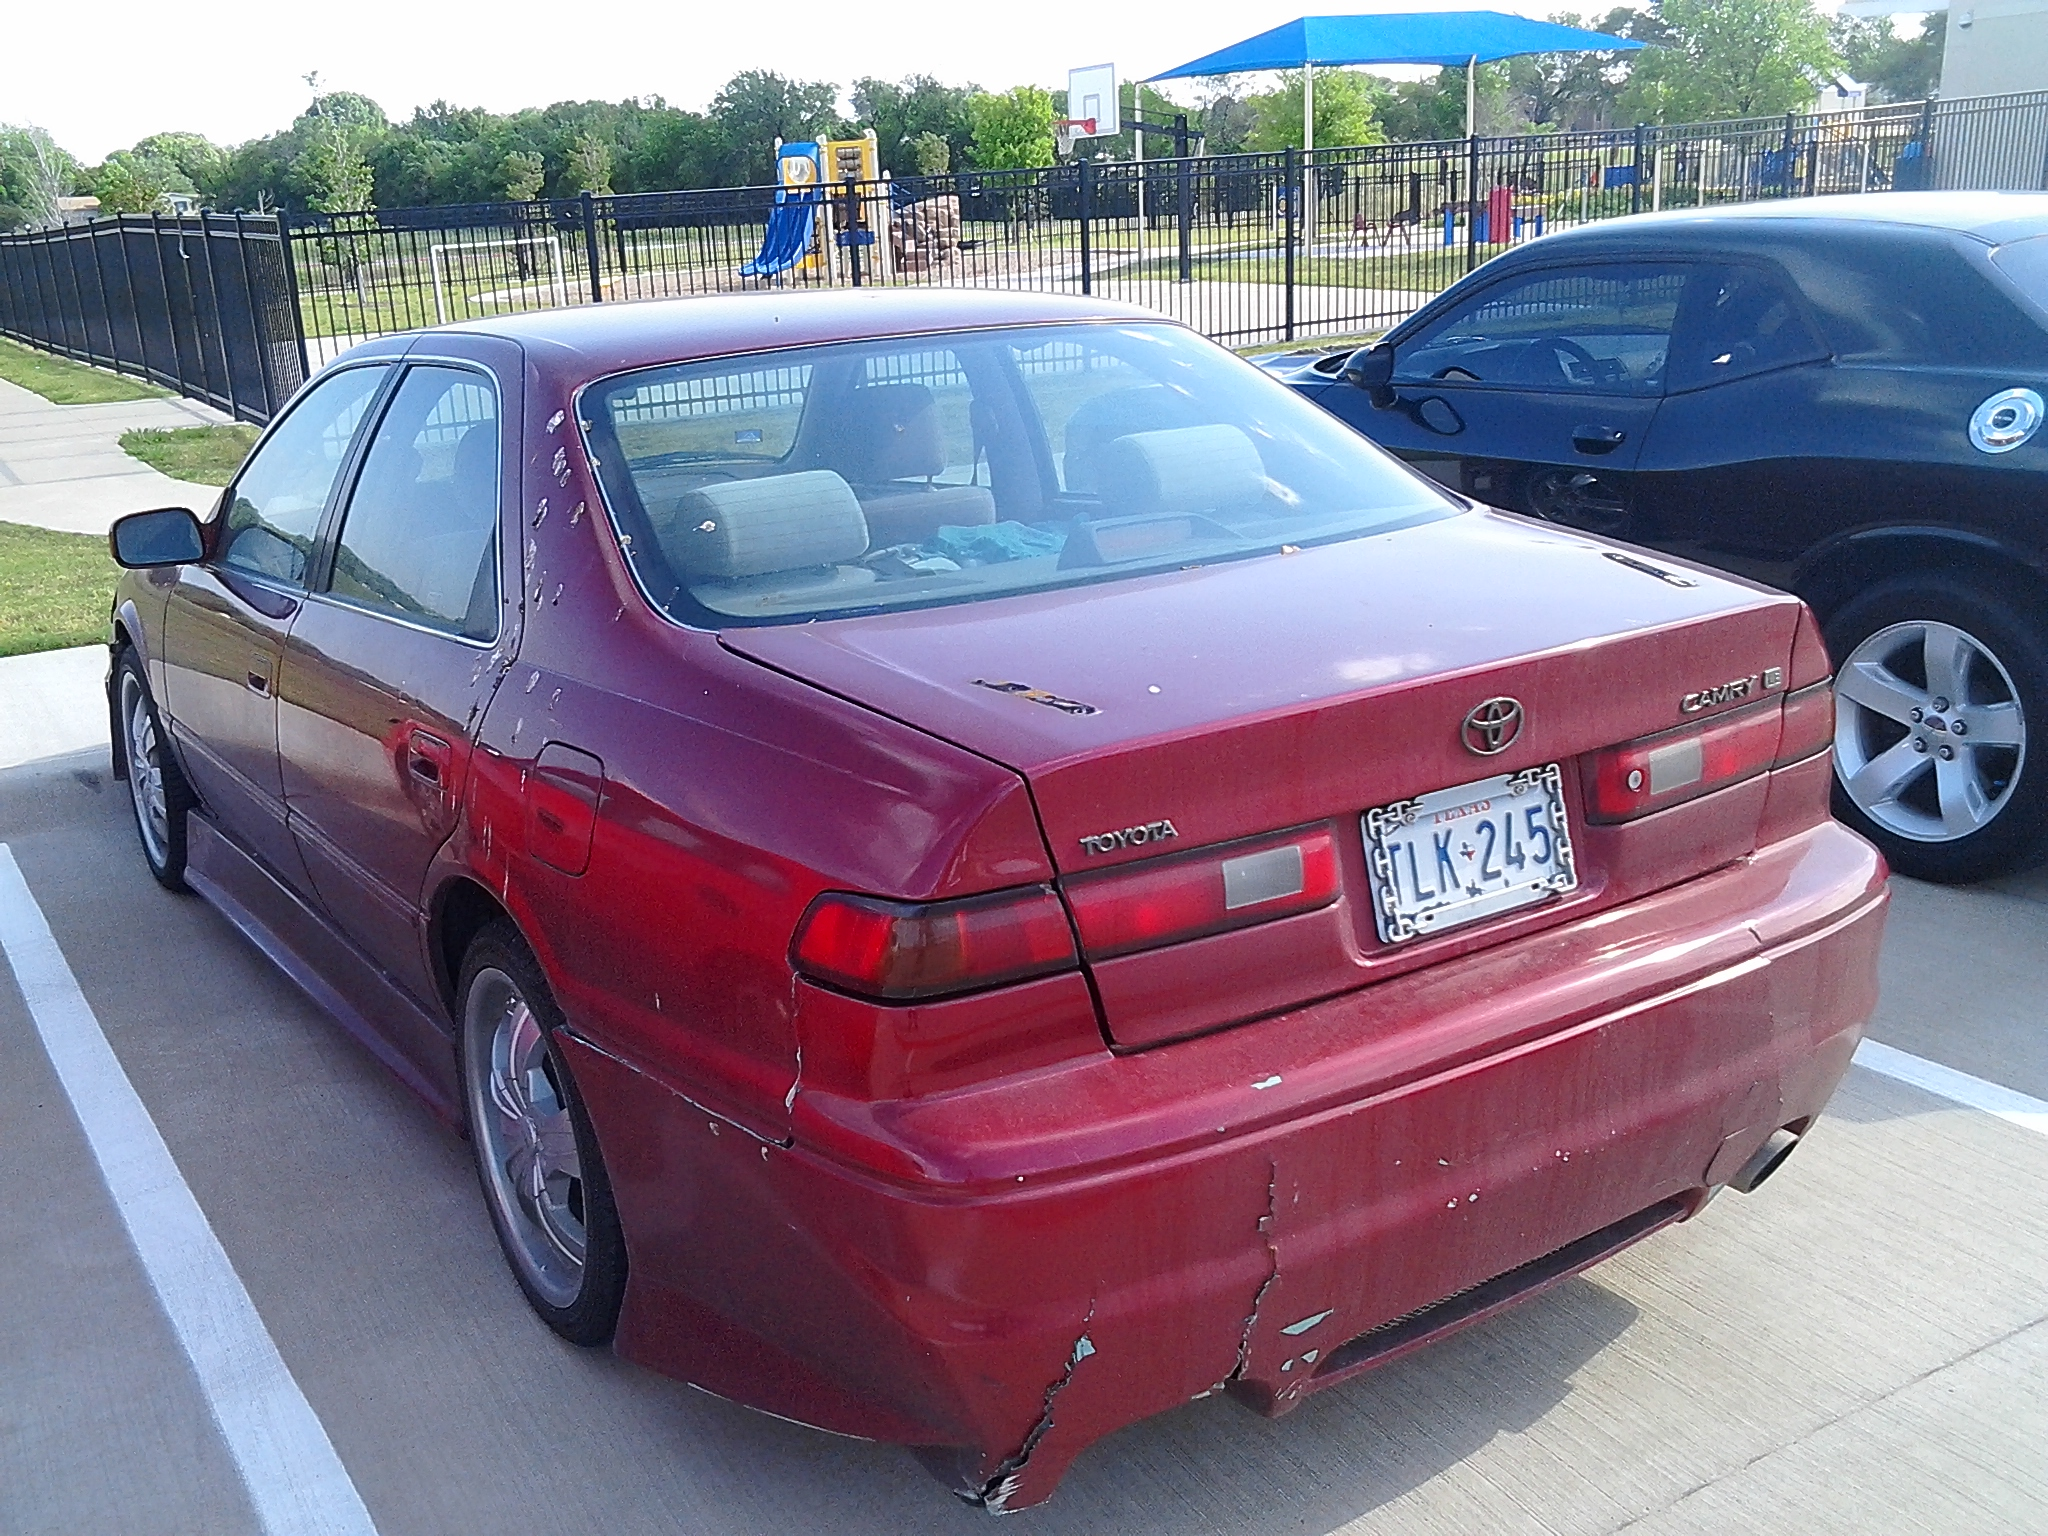 1997 Toyota Camry Le  Beater   Ricer  By Tr0llhammeren On